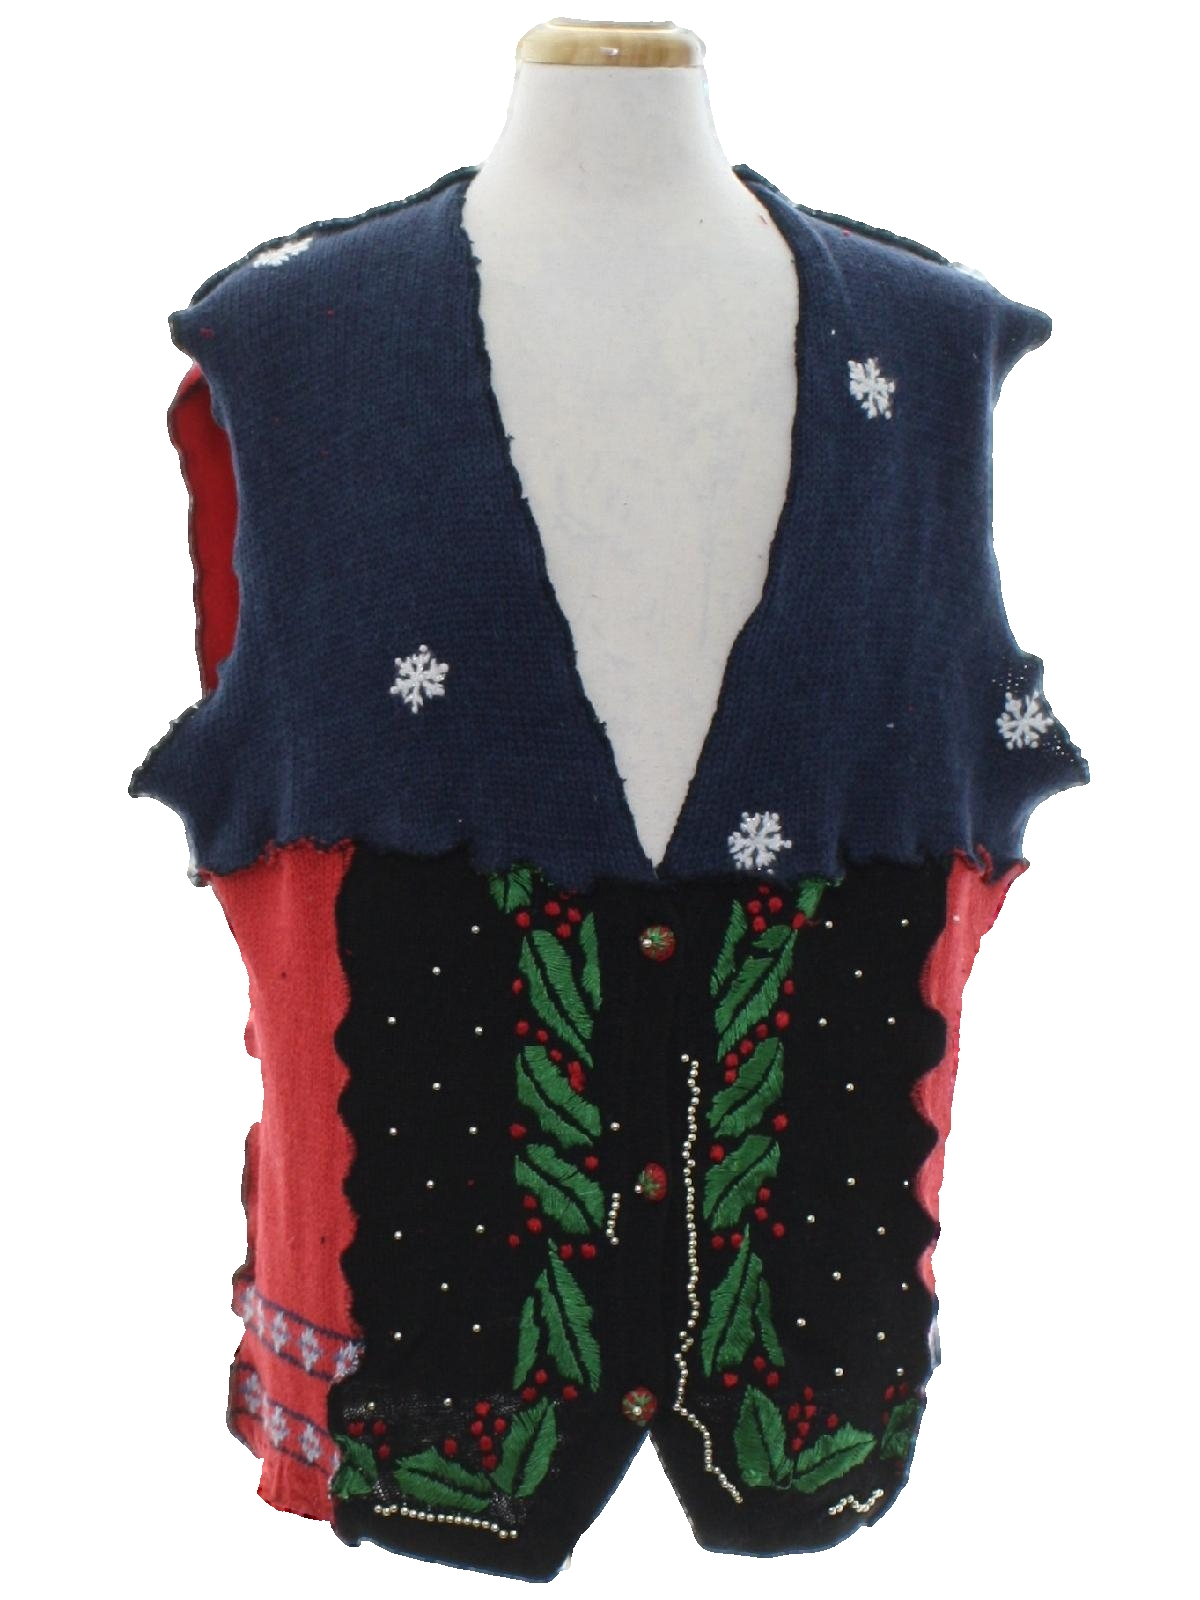 hand made patchwork ugly christmas sweater vest hand made unique one of a kind unisex red black blue background cotton ramie blend button front hand - Unique Christmas Sweaters